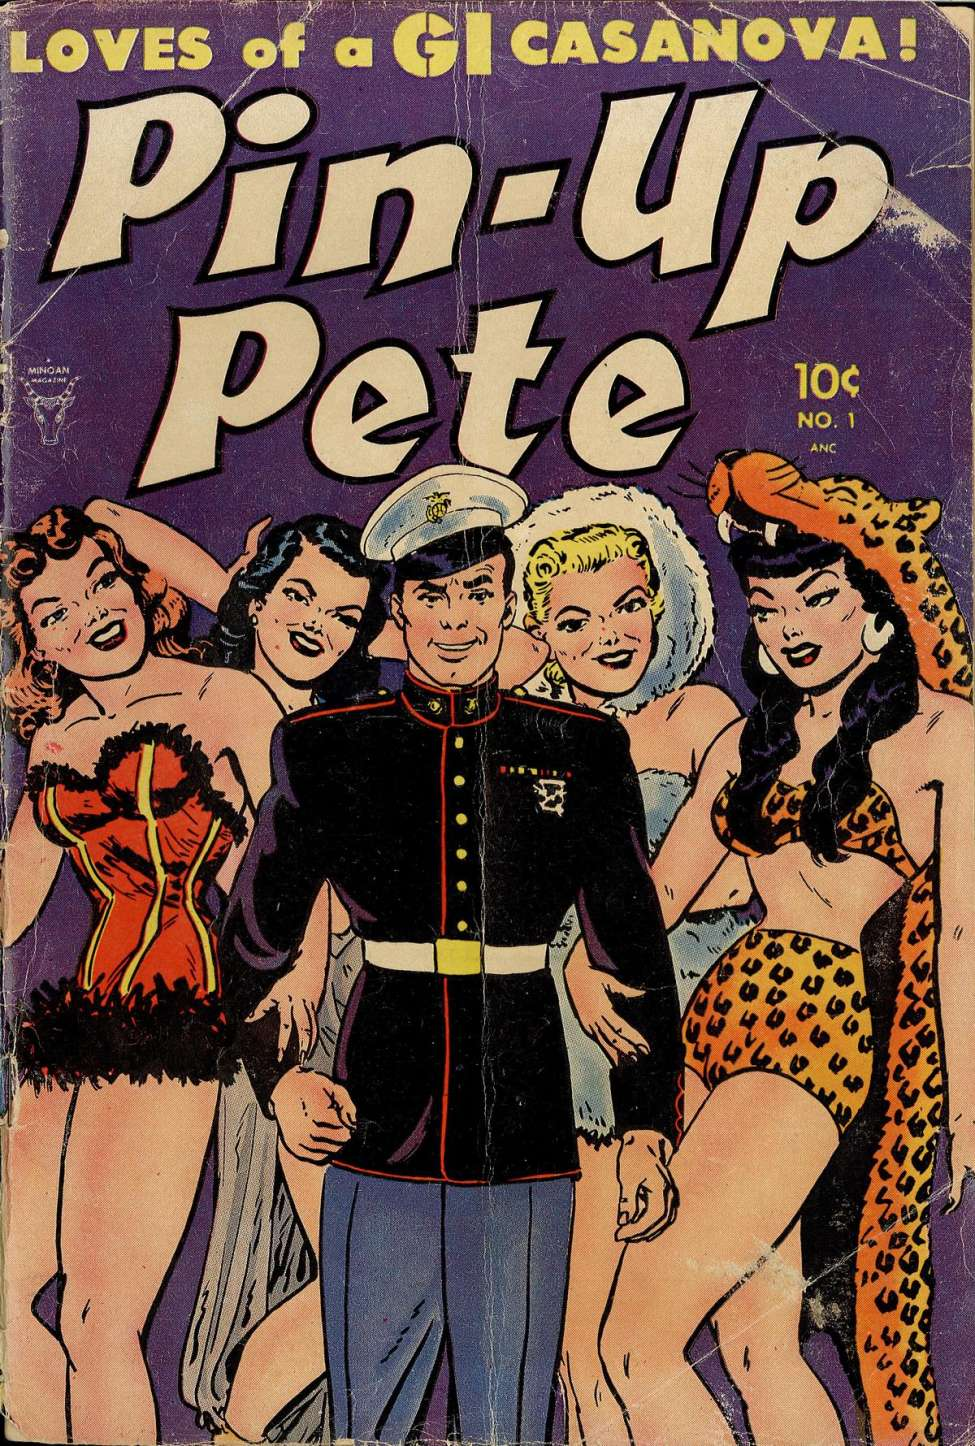 Pin-Up Pete